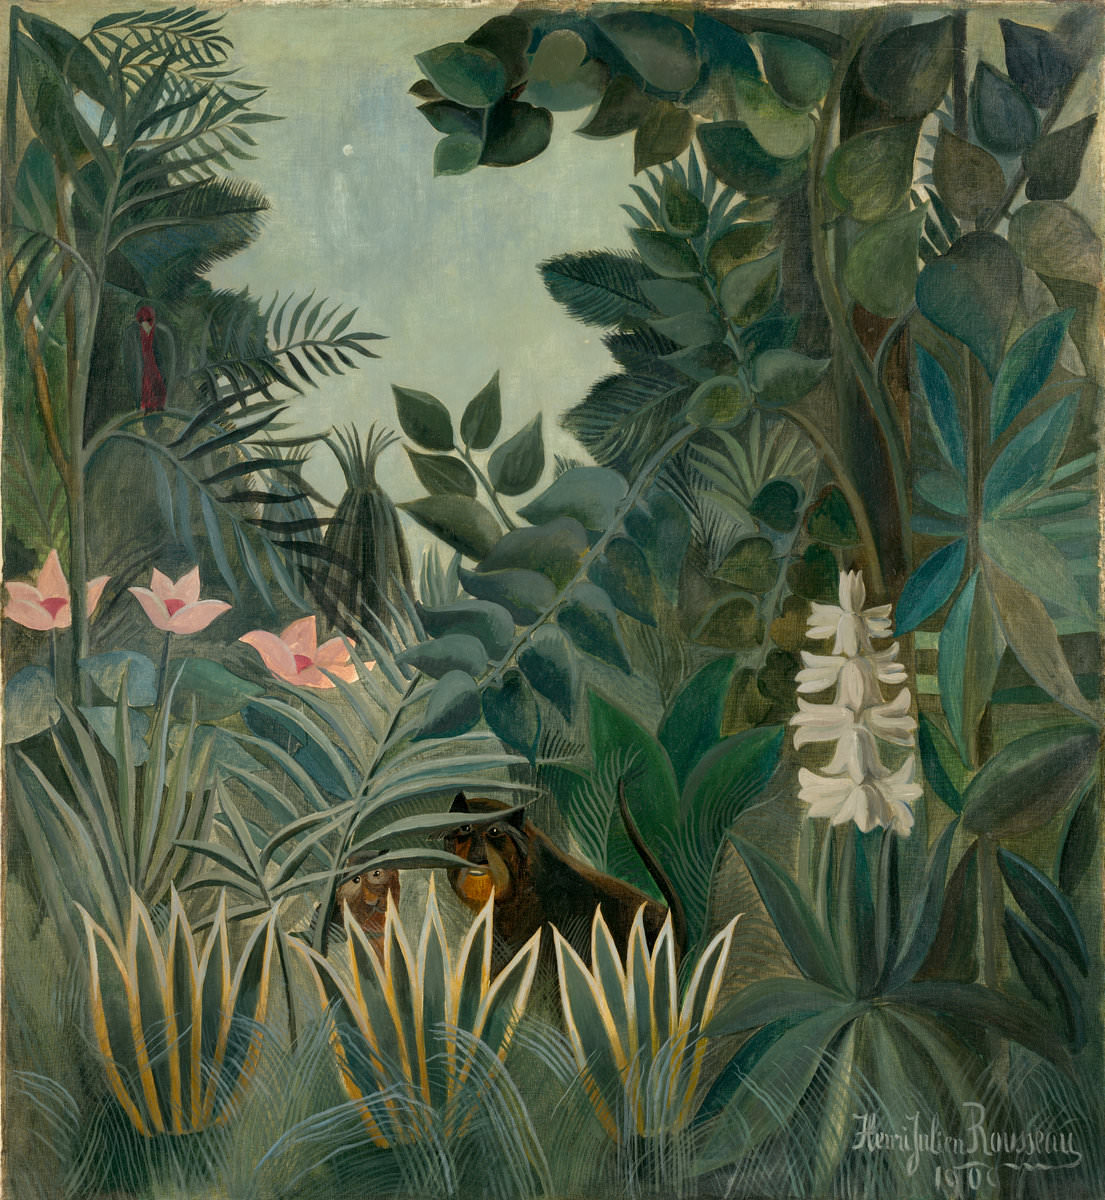 Feige. 17 -Der Regenwald, Henri Rousseau, 1909. National Gallery of Art, Washington. Chester Dale Collection.